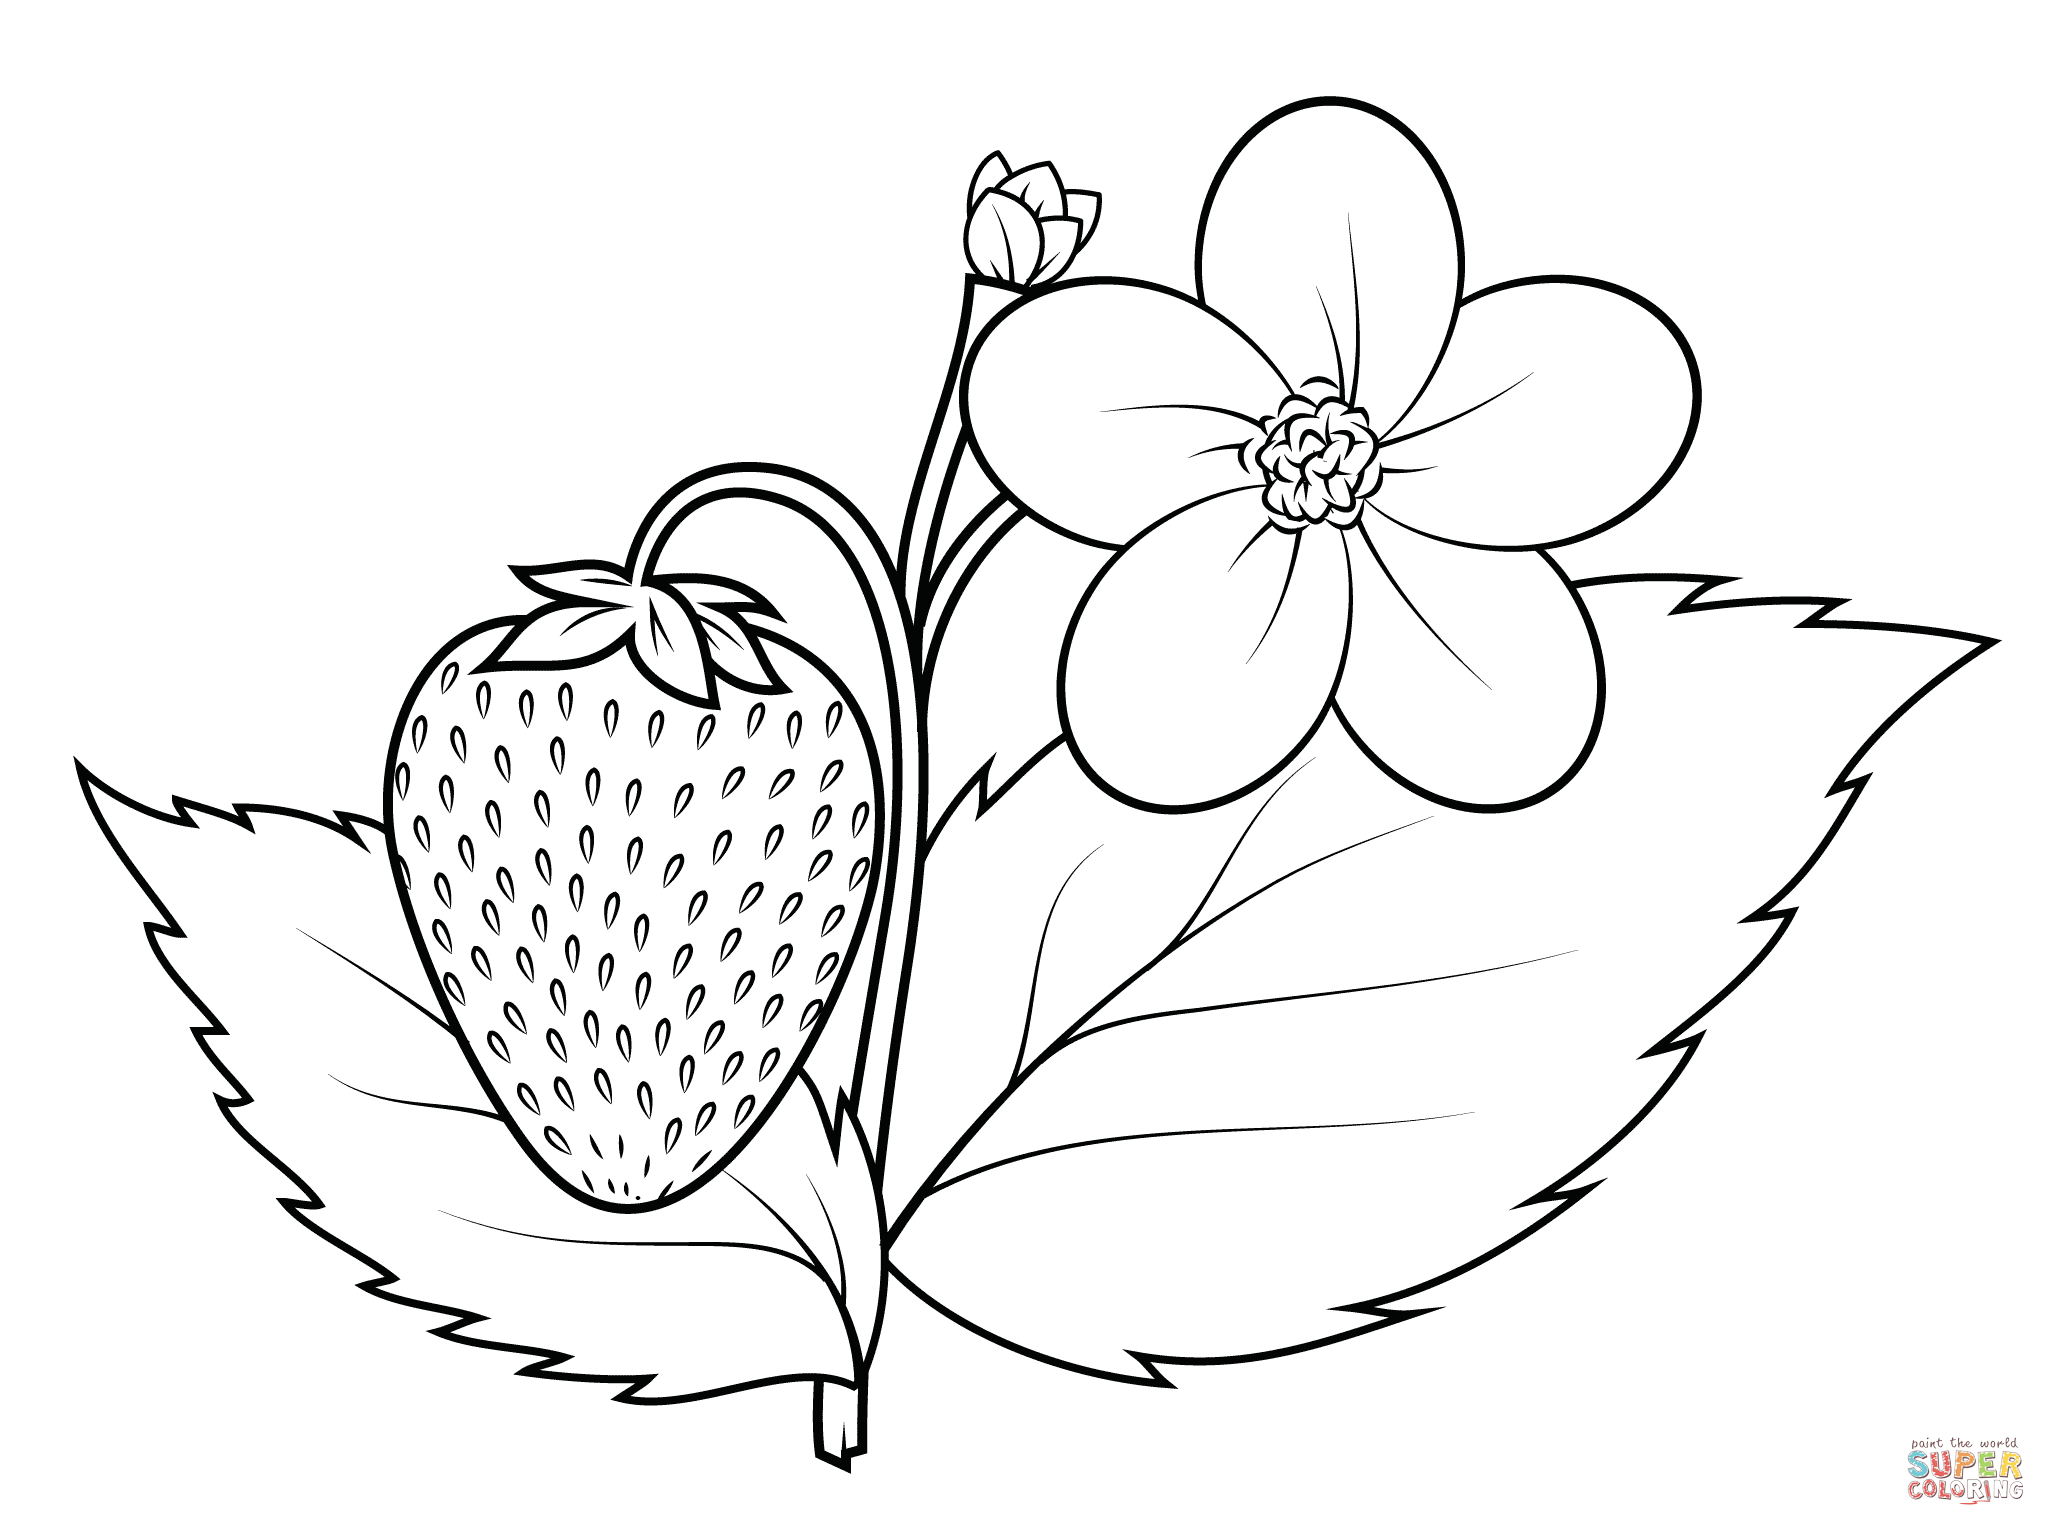 2046x1526 Strawberry Plant Coloring Page Free Printable Coloring Pages Plant